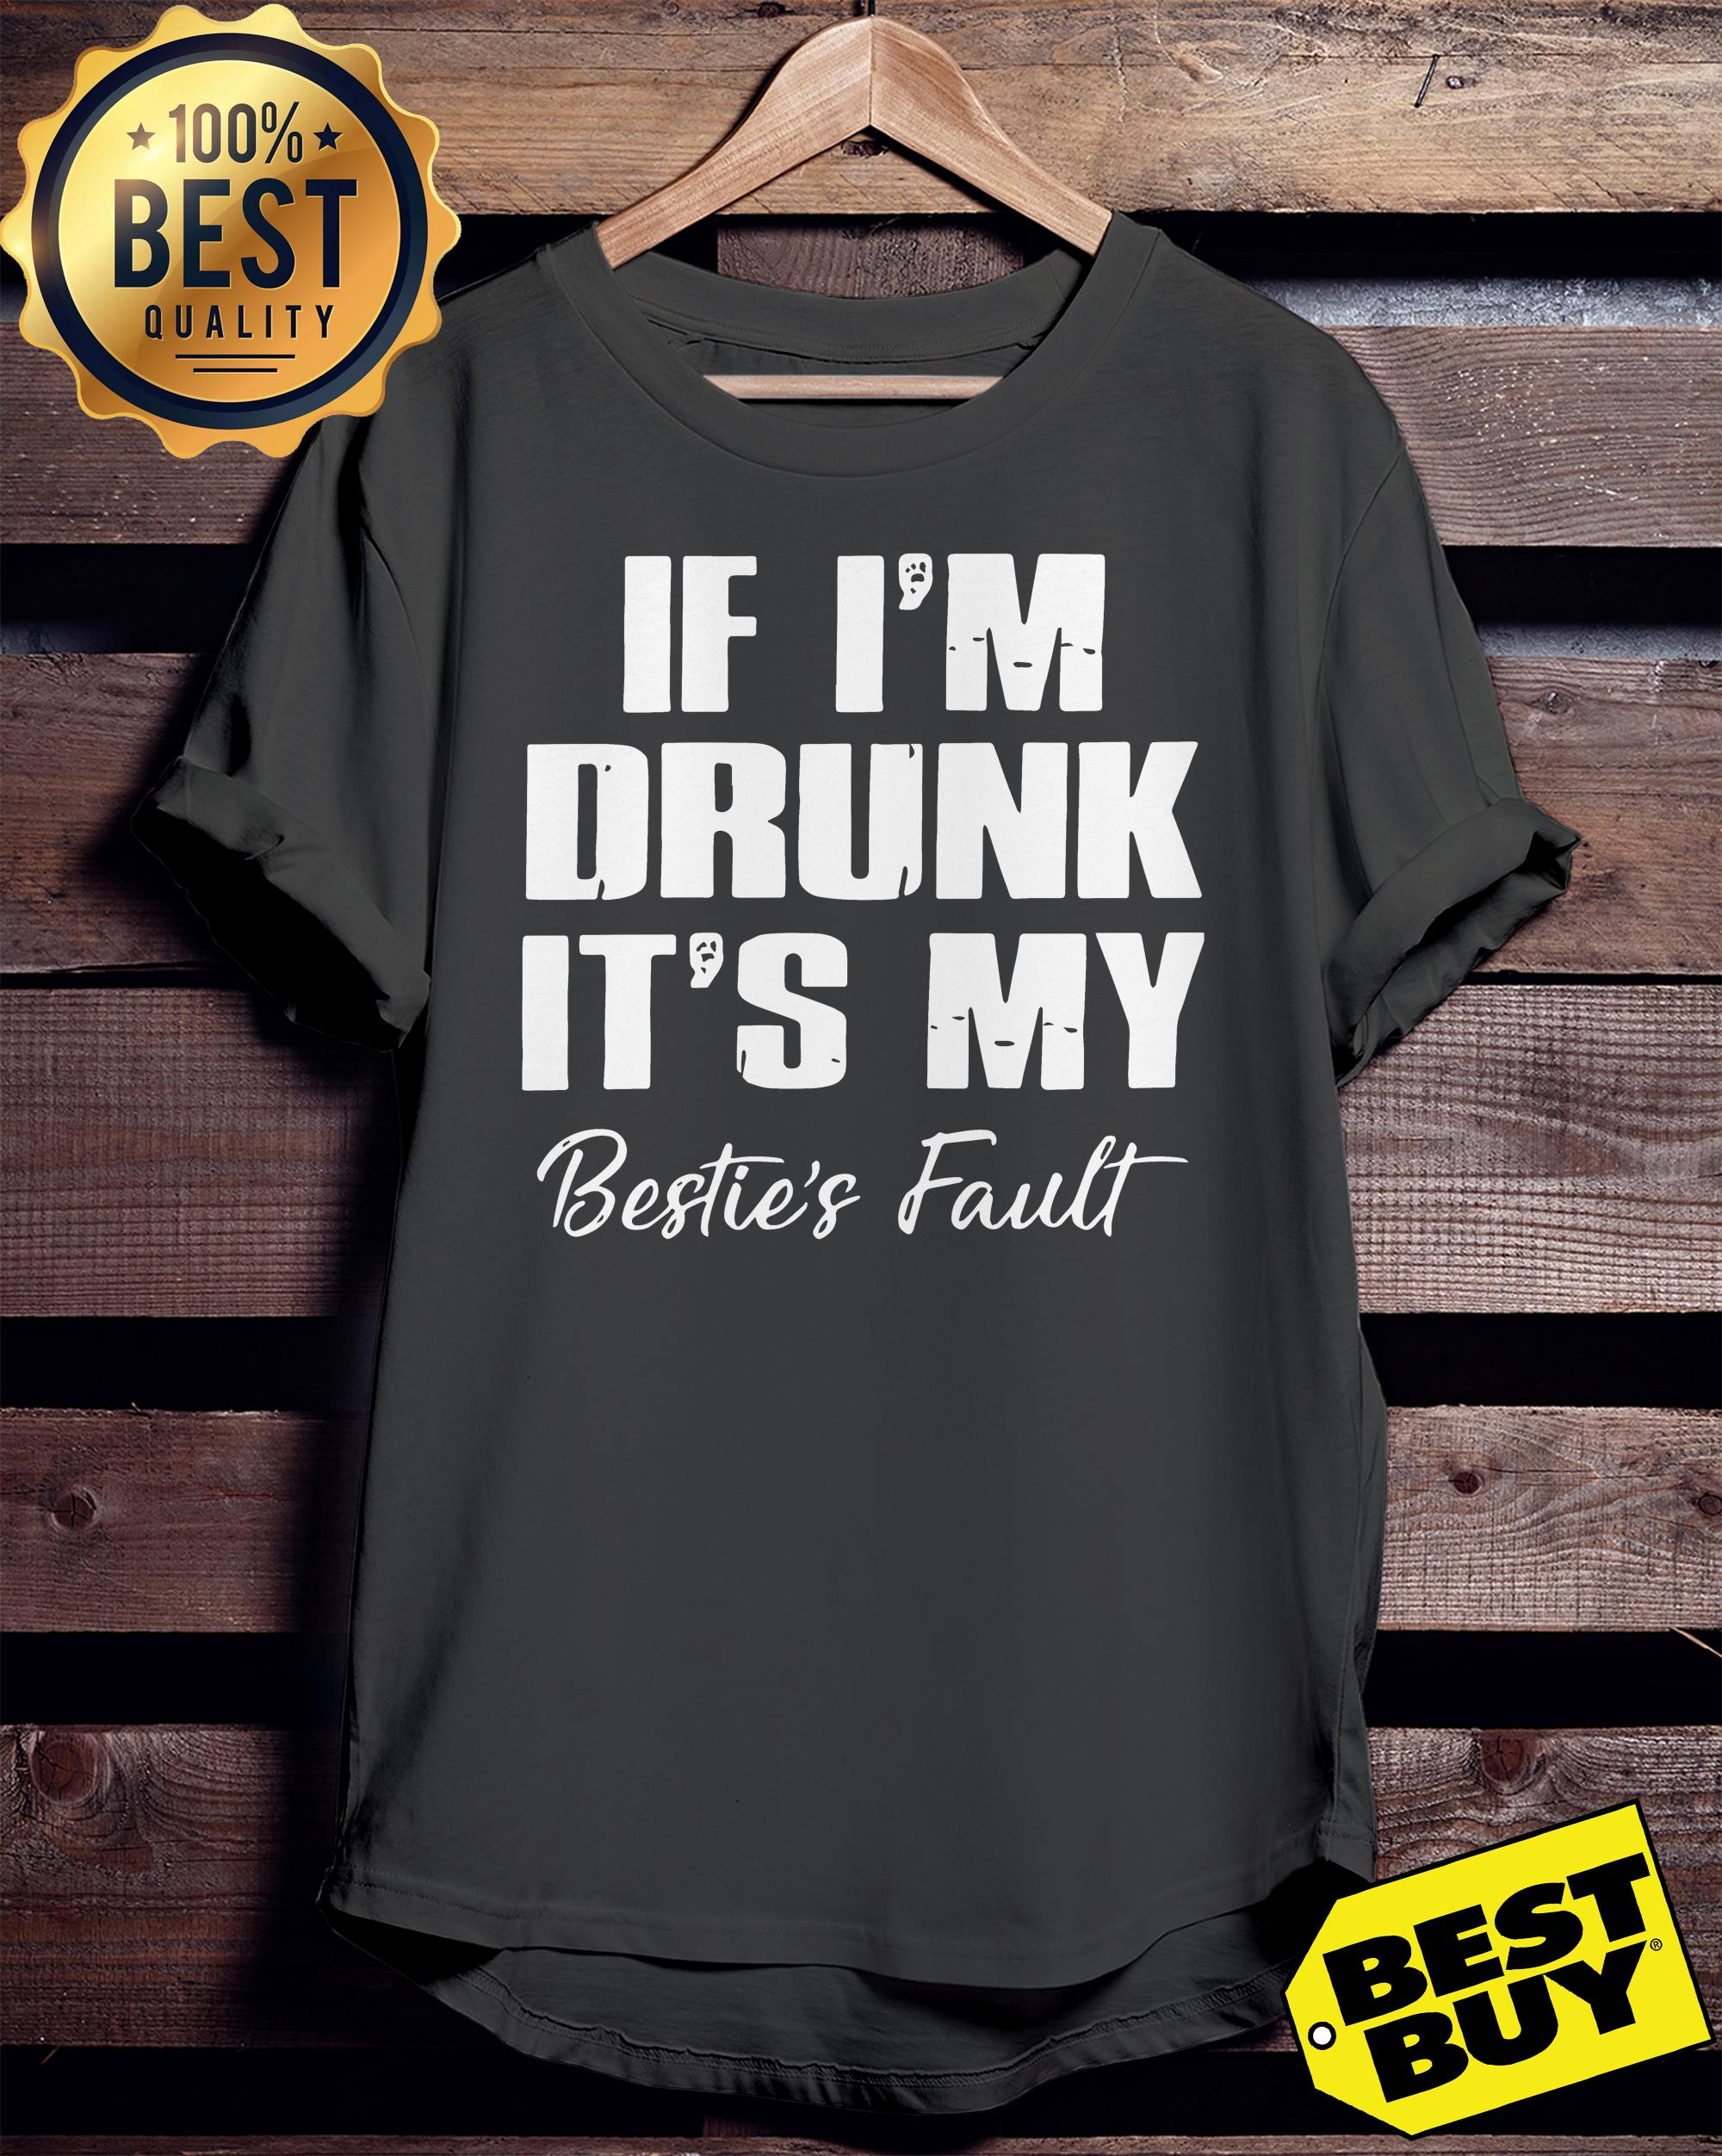 If I'm drunk it's my bestie's fault ladies tee